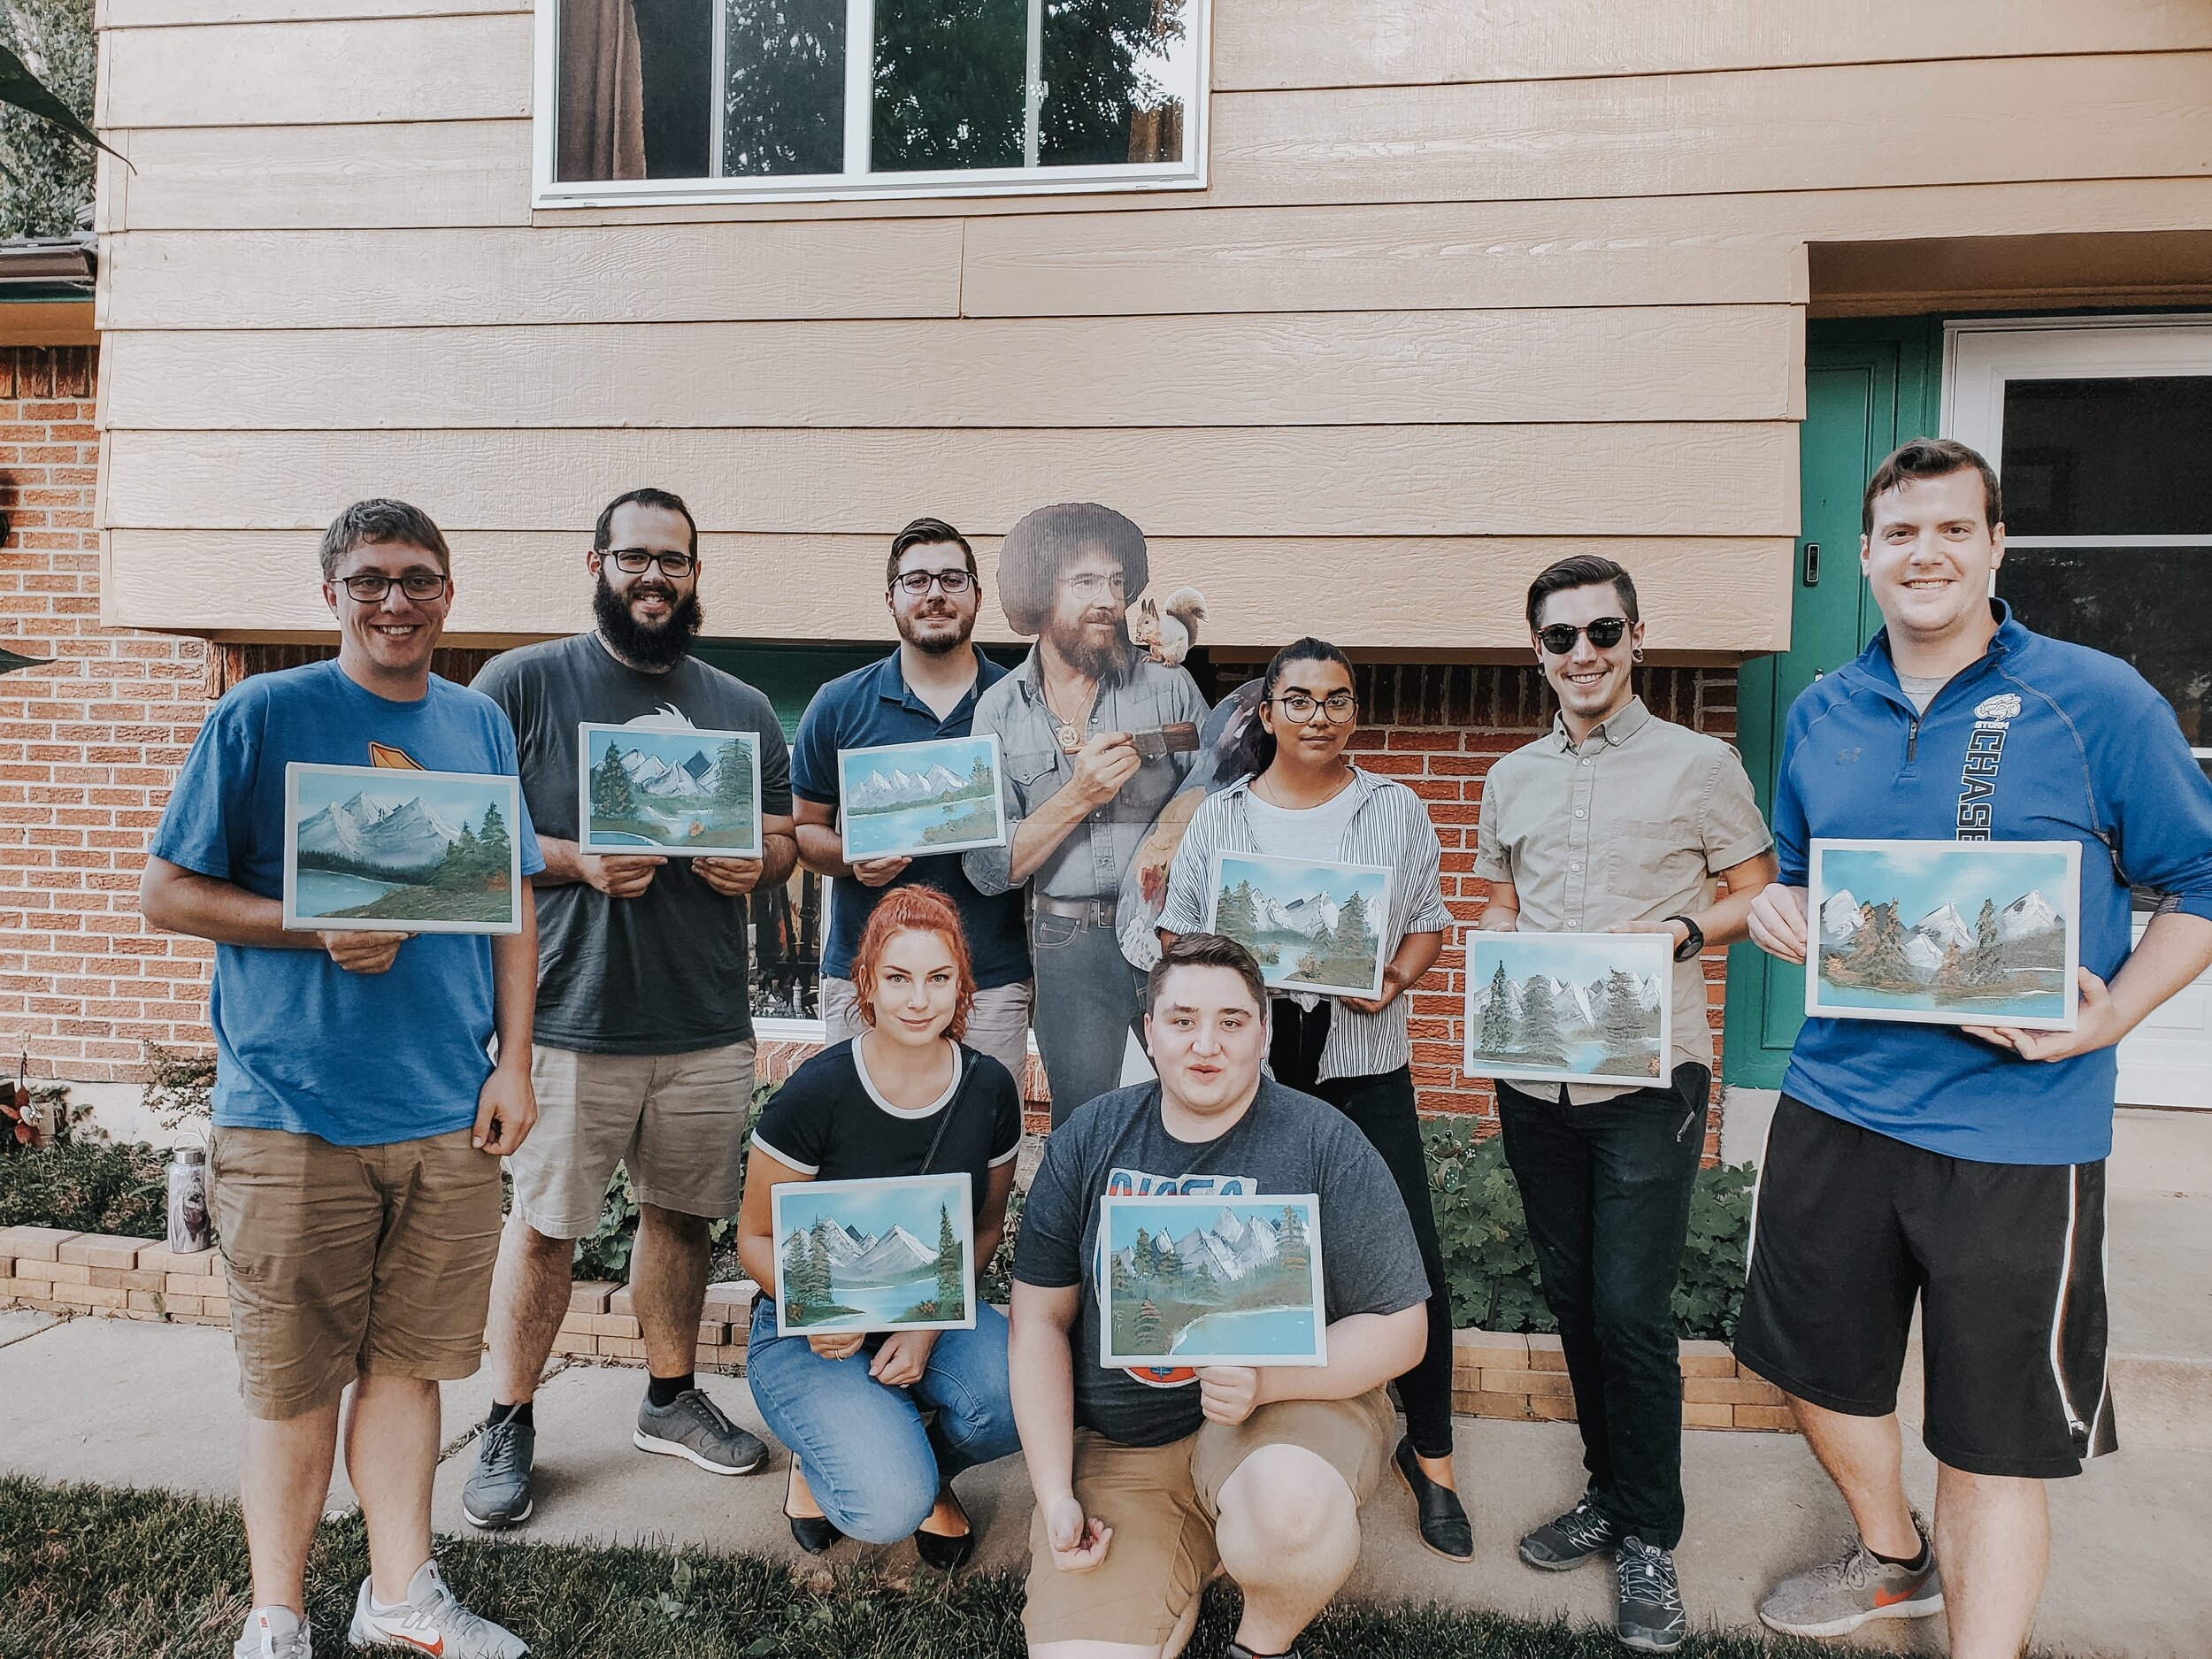 All 8 of us and our paintings! Let us know in the comments which one you think is the best!